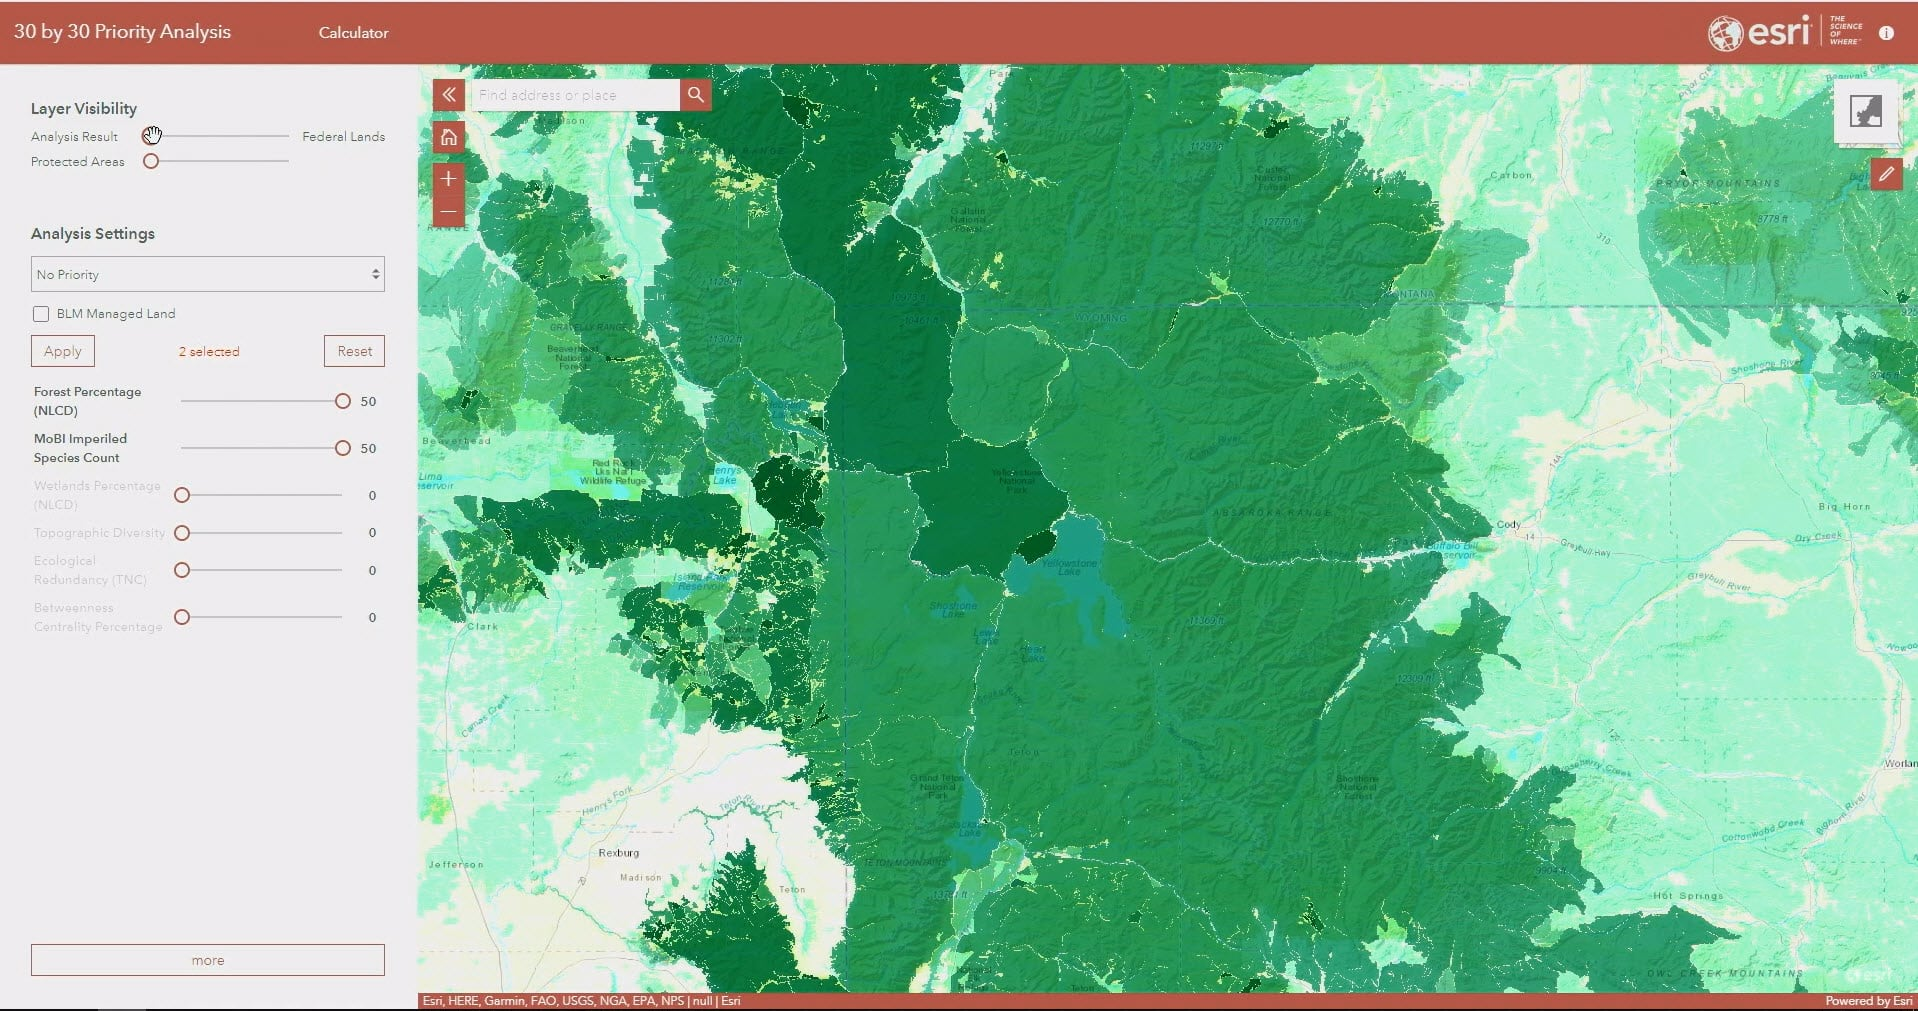 A 30 by 30 ArcGIS application create with ArcGIS. The application shows a map with shades of green in various areas. Dark green areas represent high conservation areas.